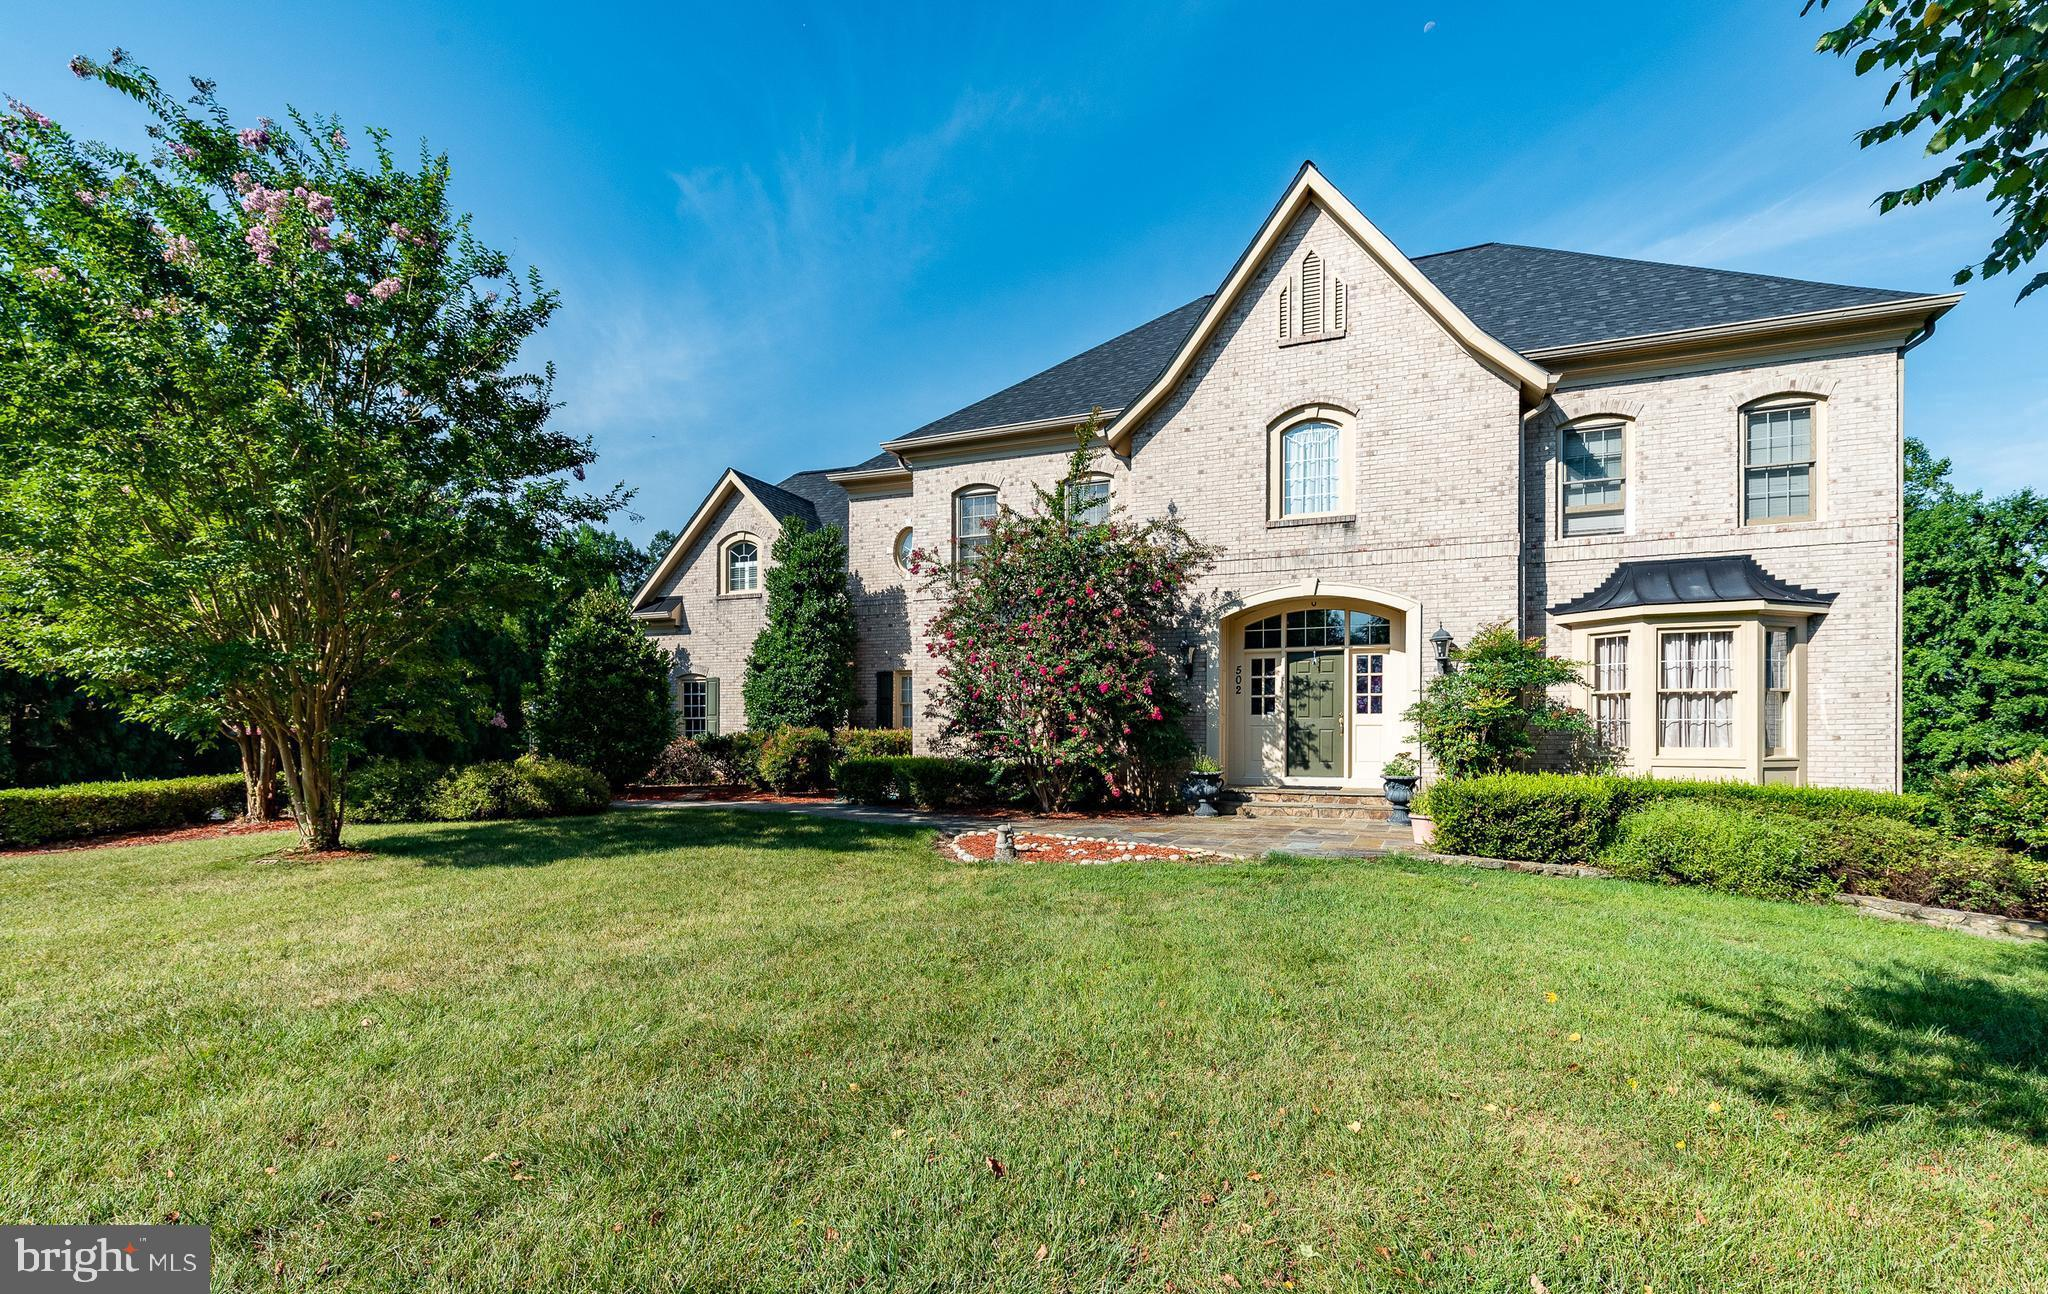 502 GRAND CYPRESS COURT, SILVER SPRING, MD 20905